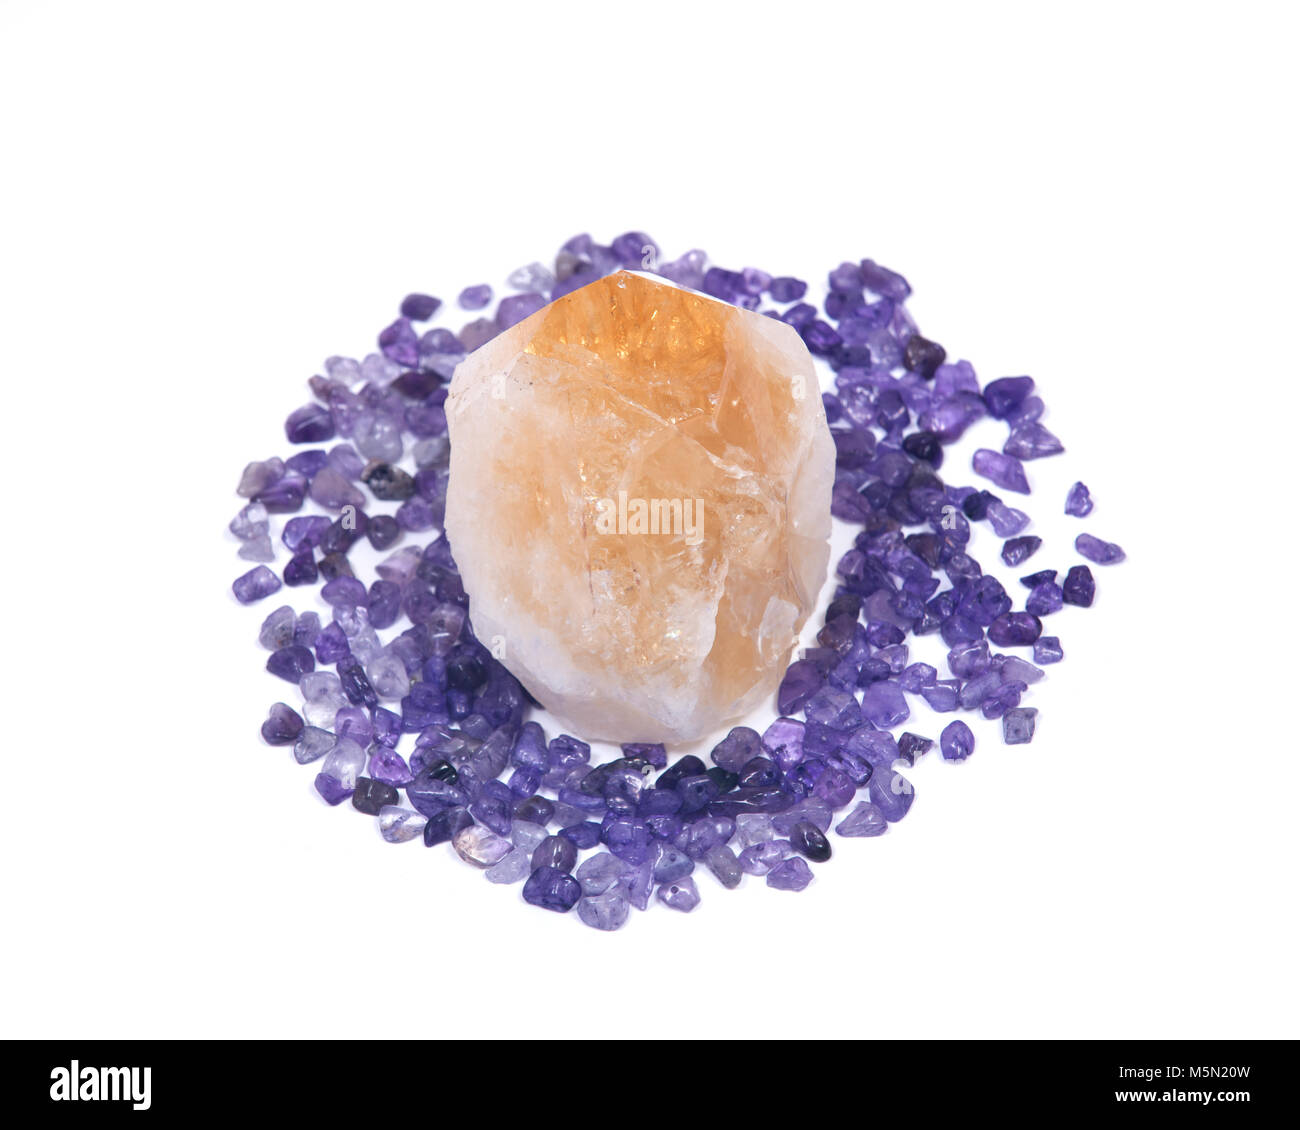 Natural citrine point surrounded by amethyst small tumbled chips isolated on white background - Stock Image